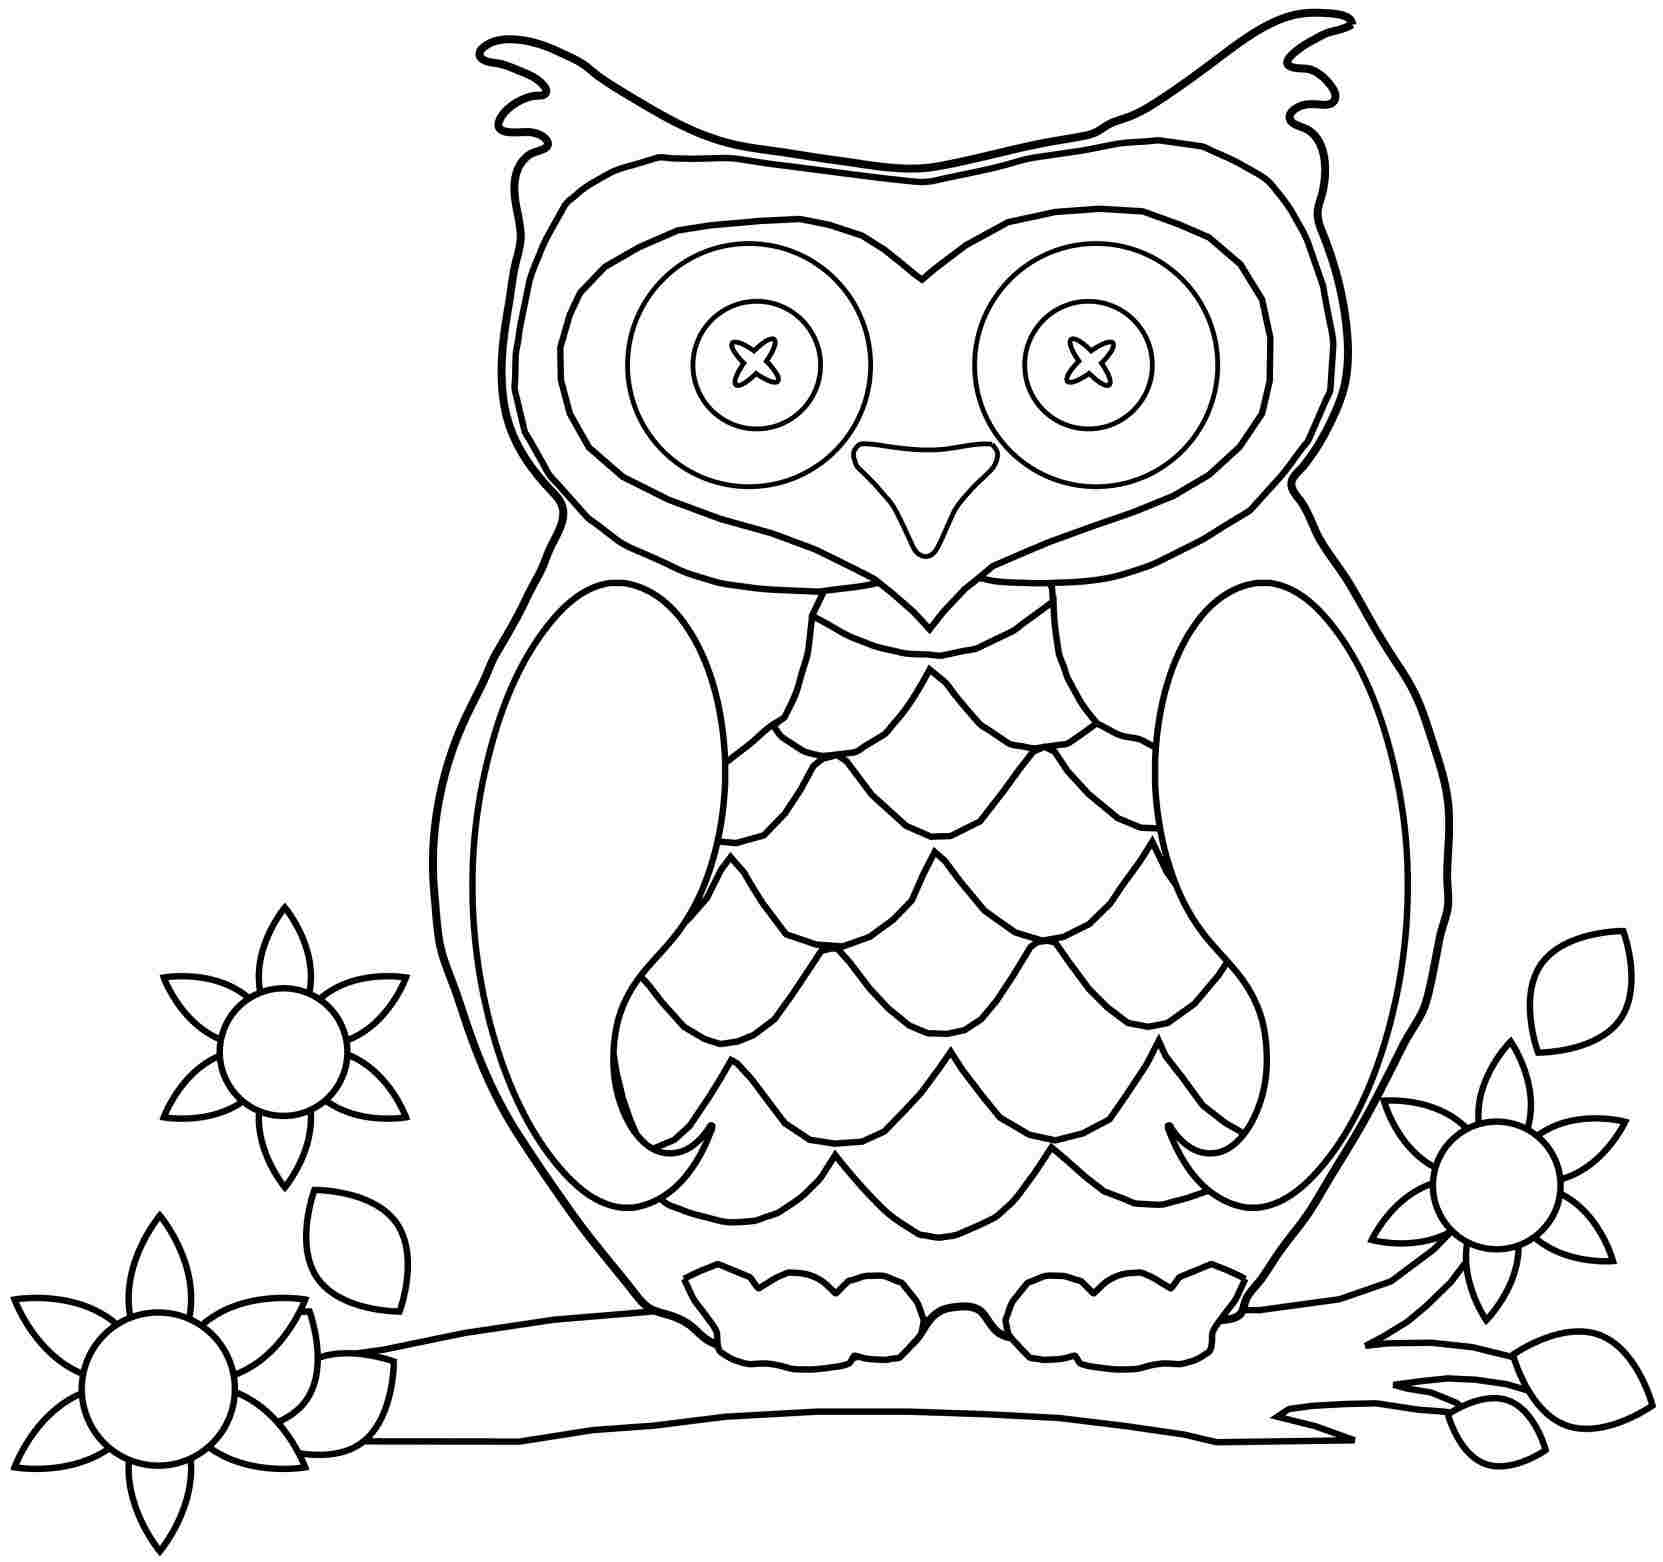 1663x1562 Adult Coloring Pages Birds Adult Coloring Pages Printable